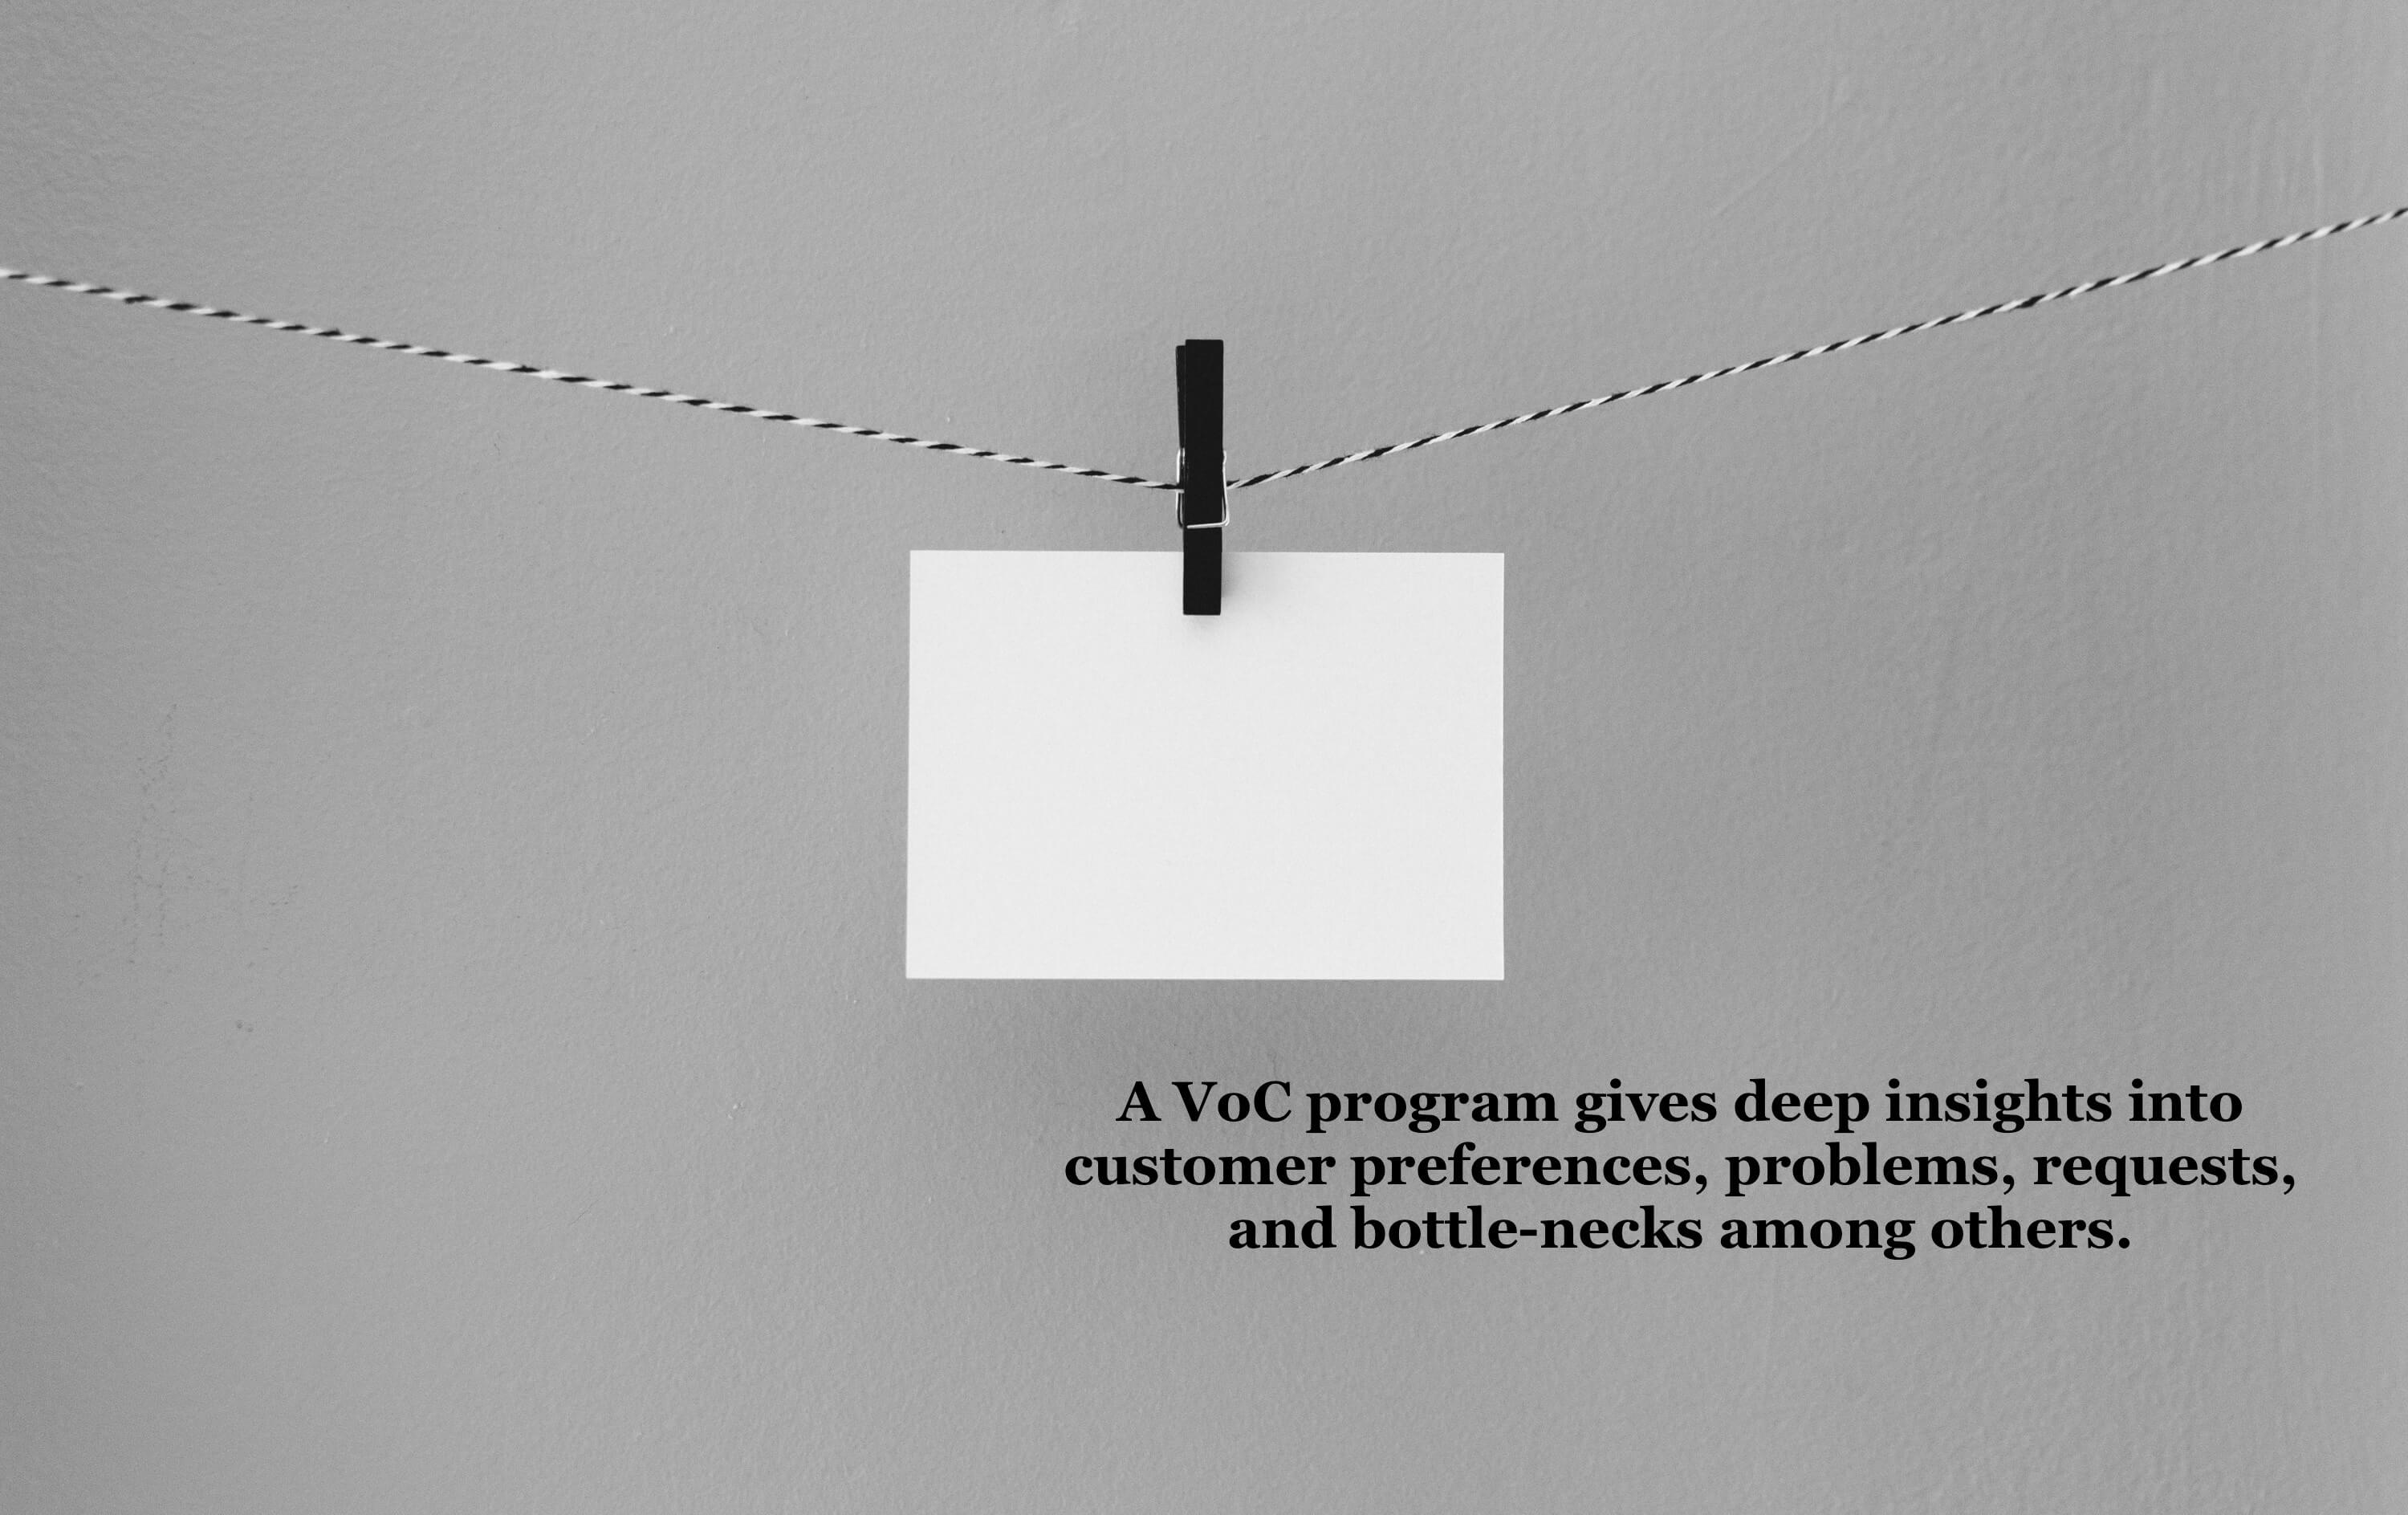 A VoC program gives deep insights into customer preferences, problems, requests, and bottle-necks among others.